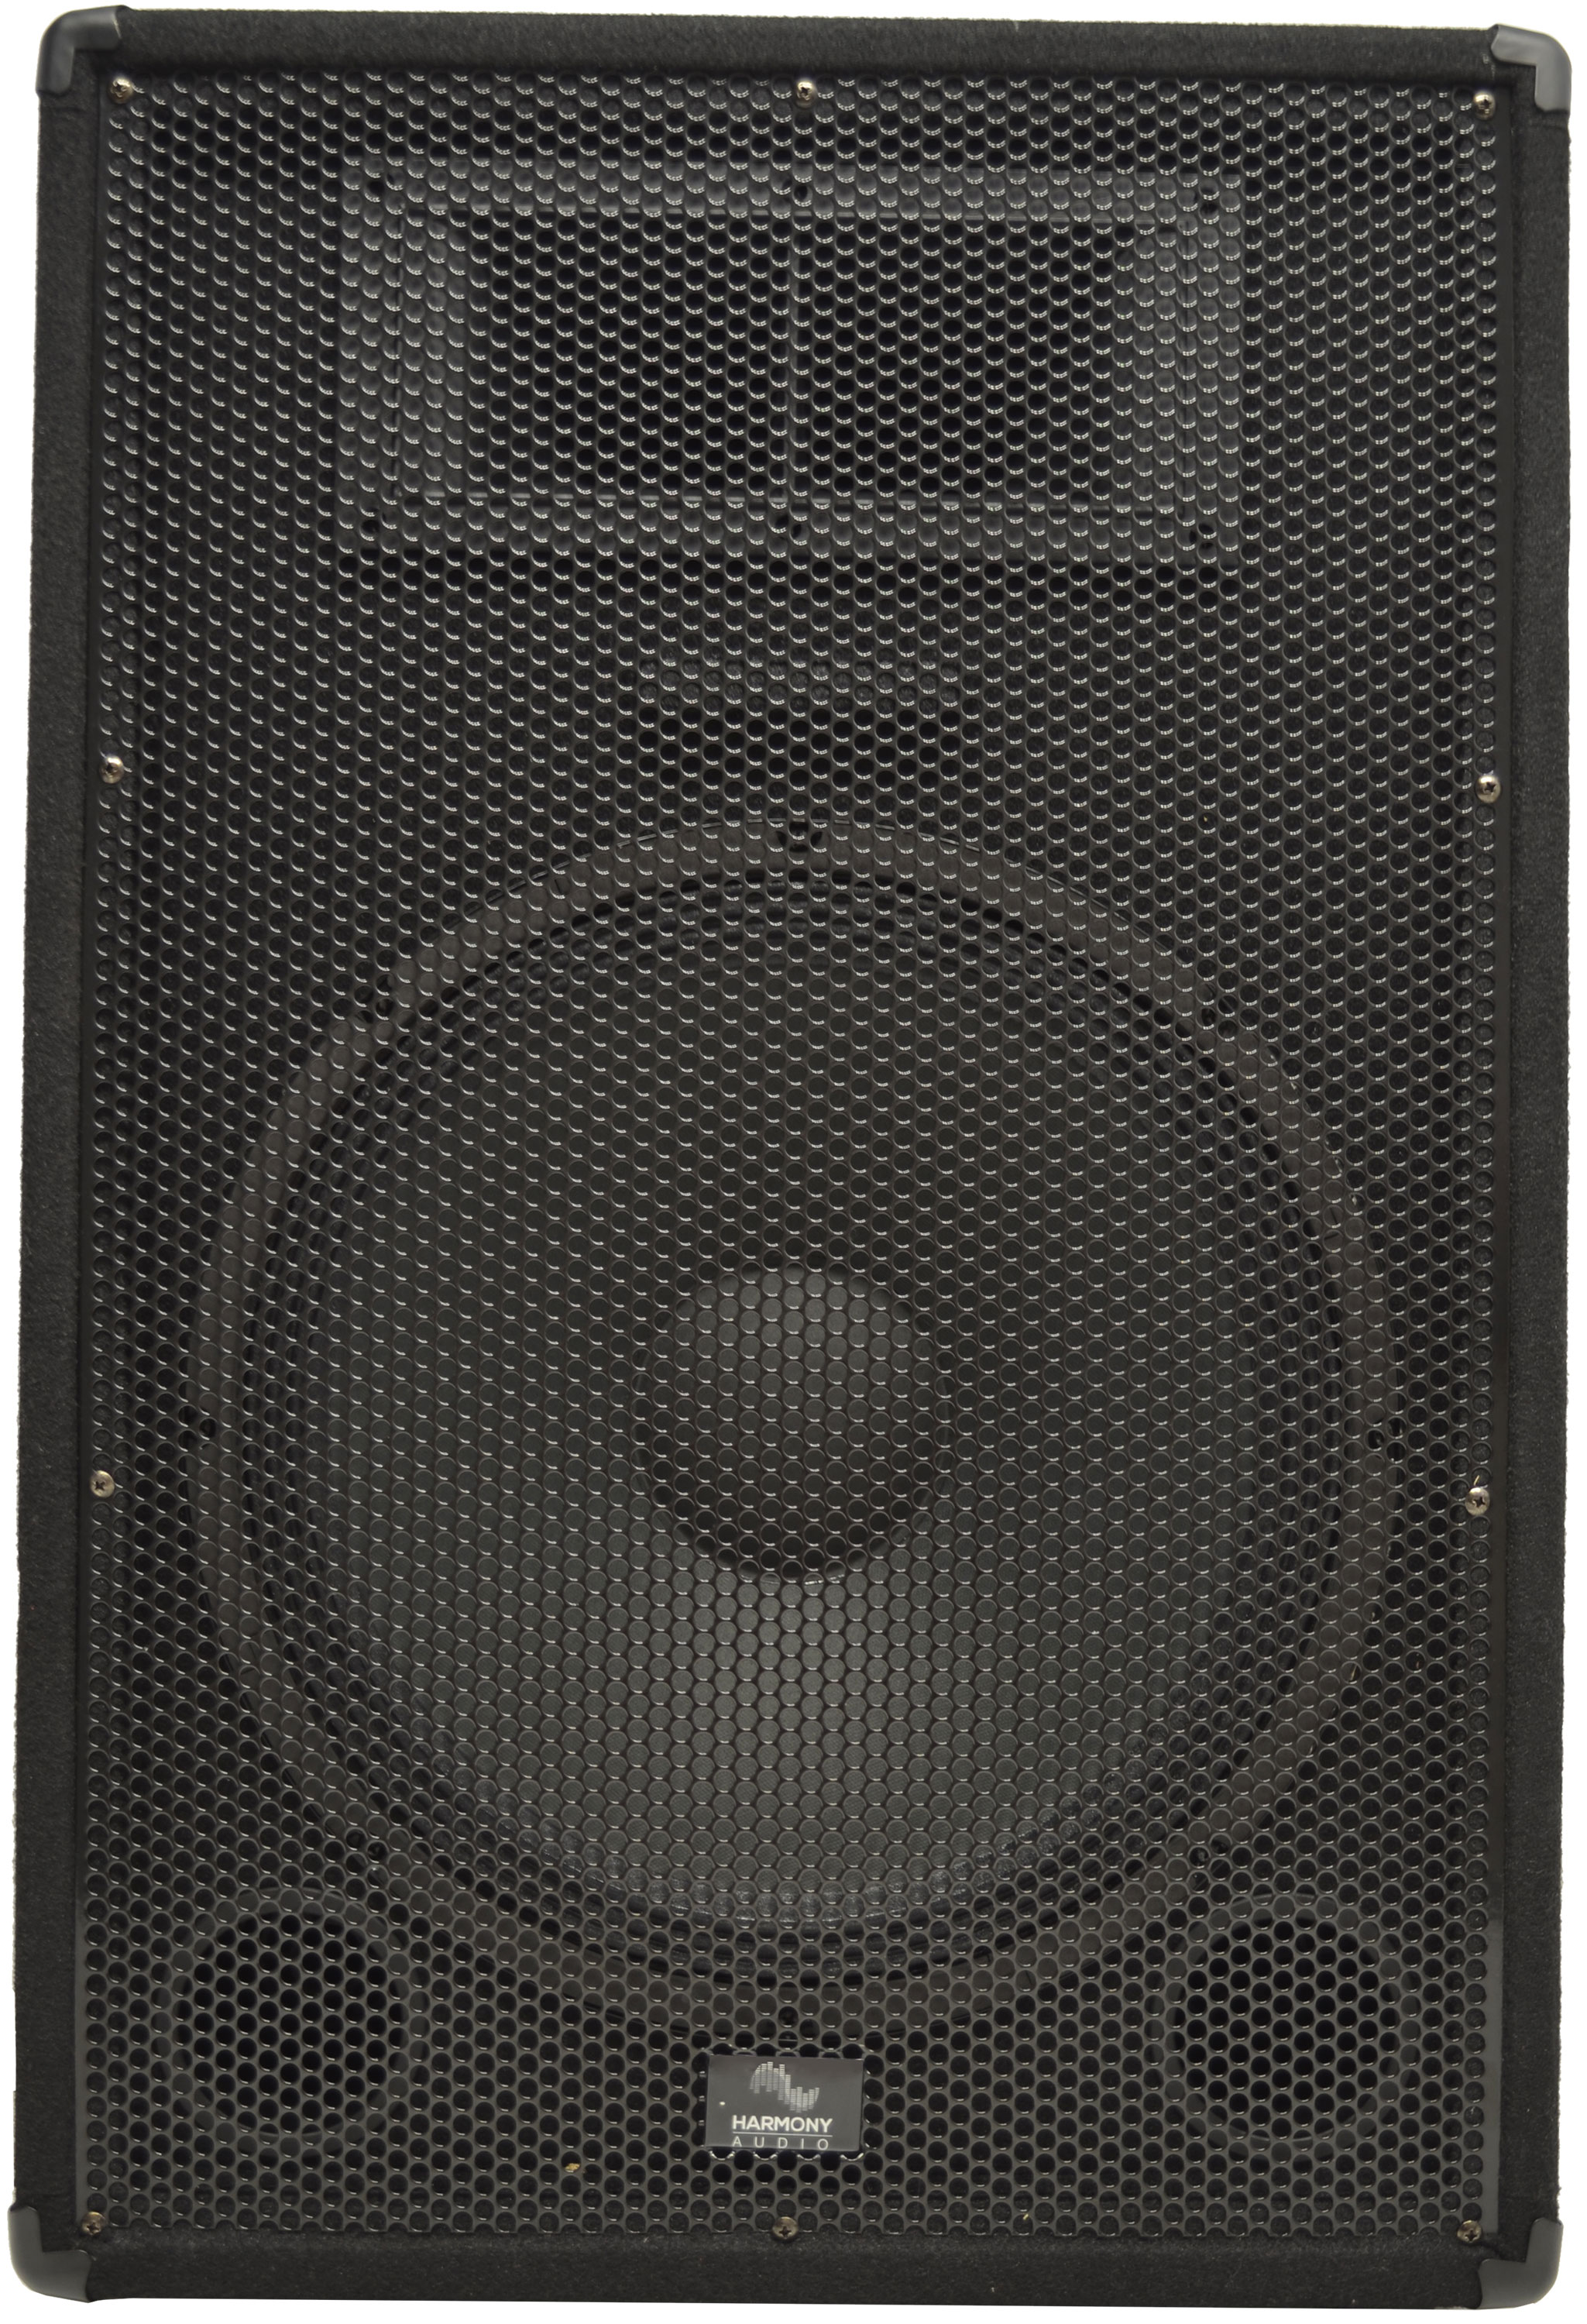 2 harmony ha v15p 15 dj pa speaker peavey pvi 8500 active mixer cables stands ha pa package86. Black Bedroom Furniture Sets. Home Design Ideas